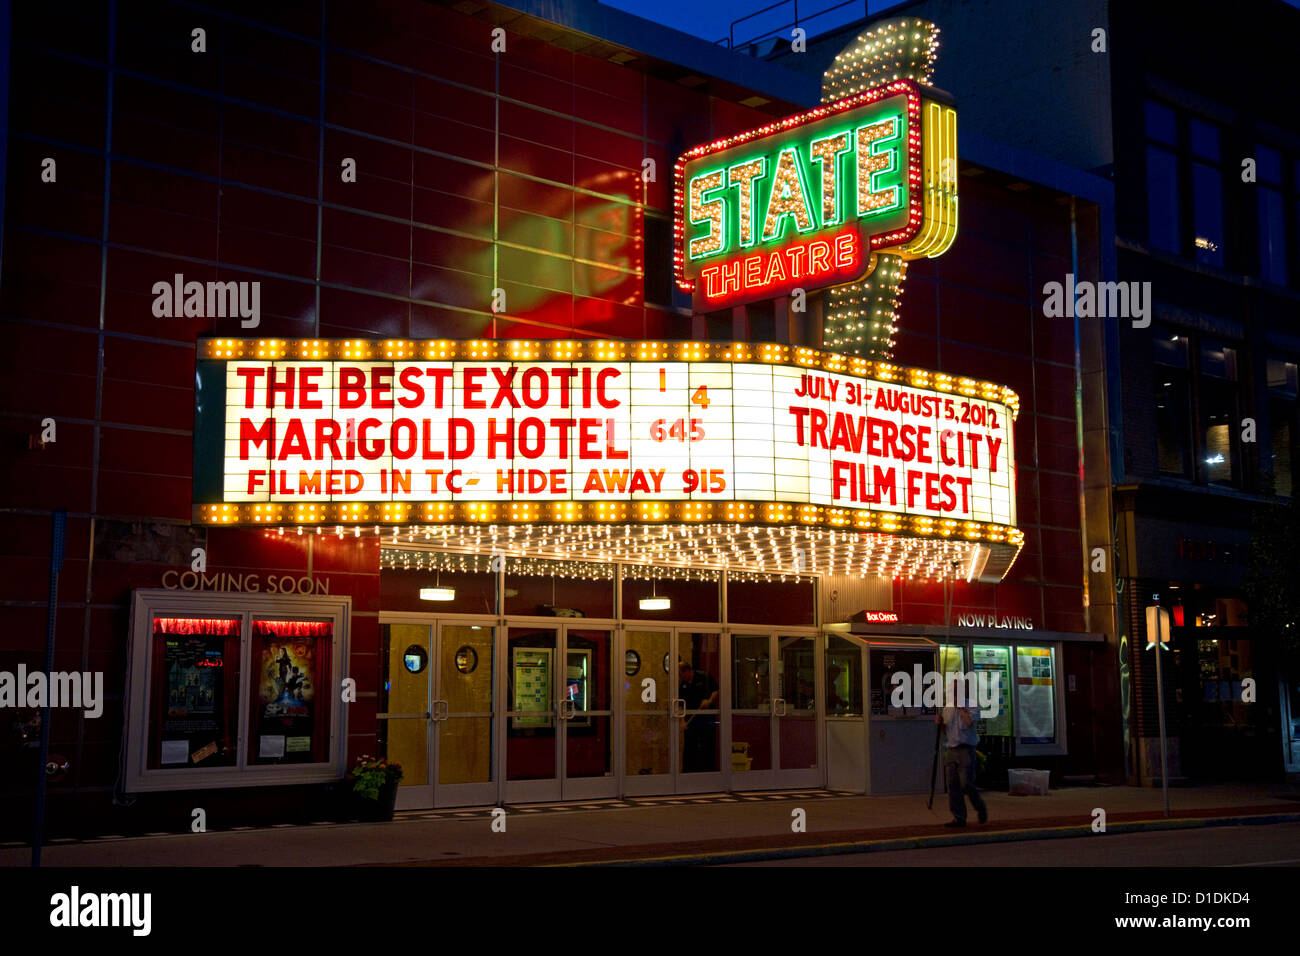 The State Theatre marquee in Traverse City, Michigan, USA. - Stock Image